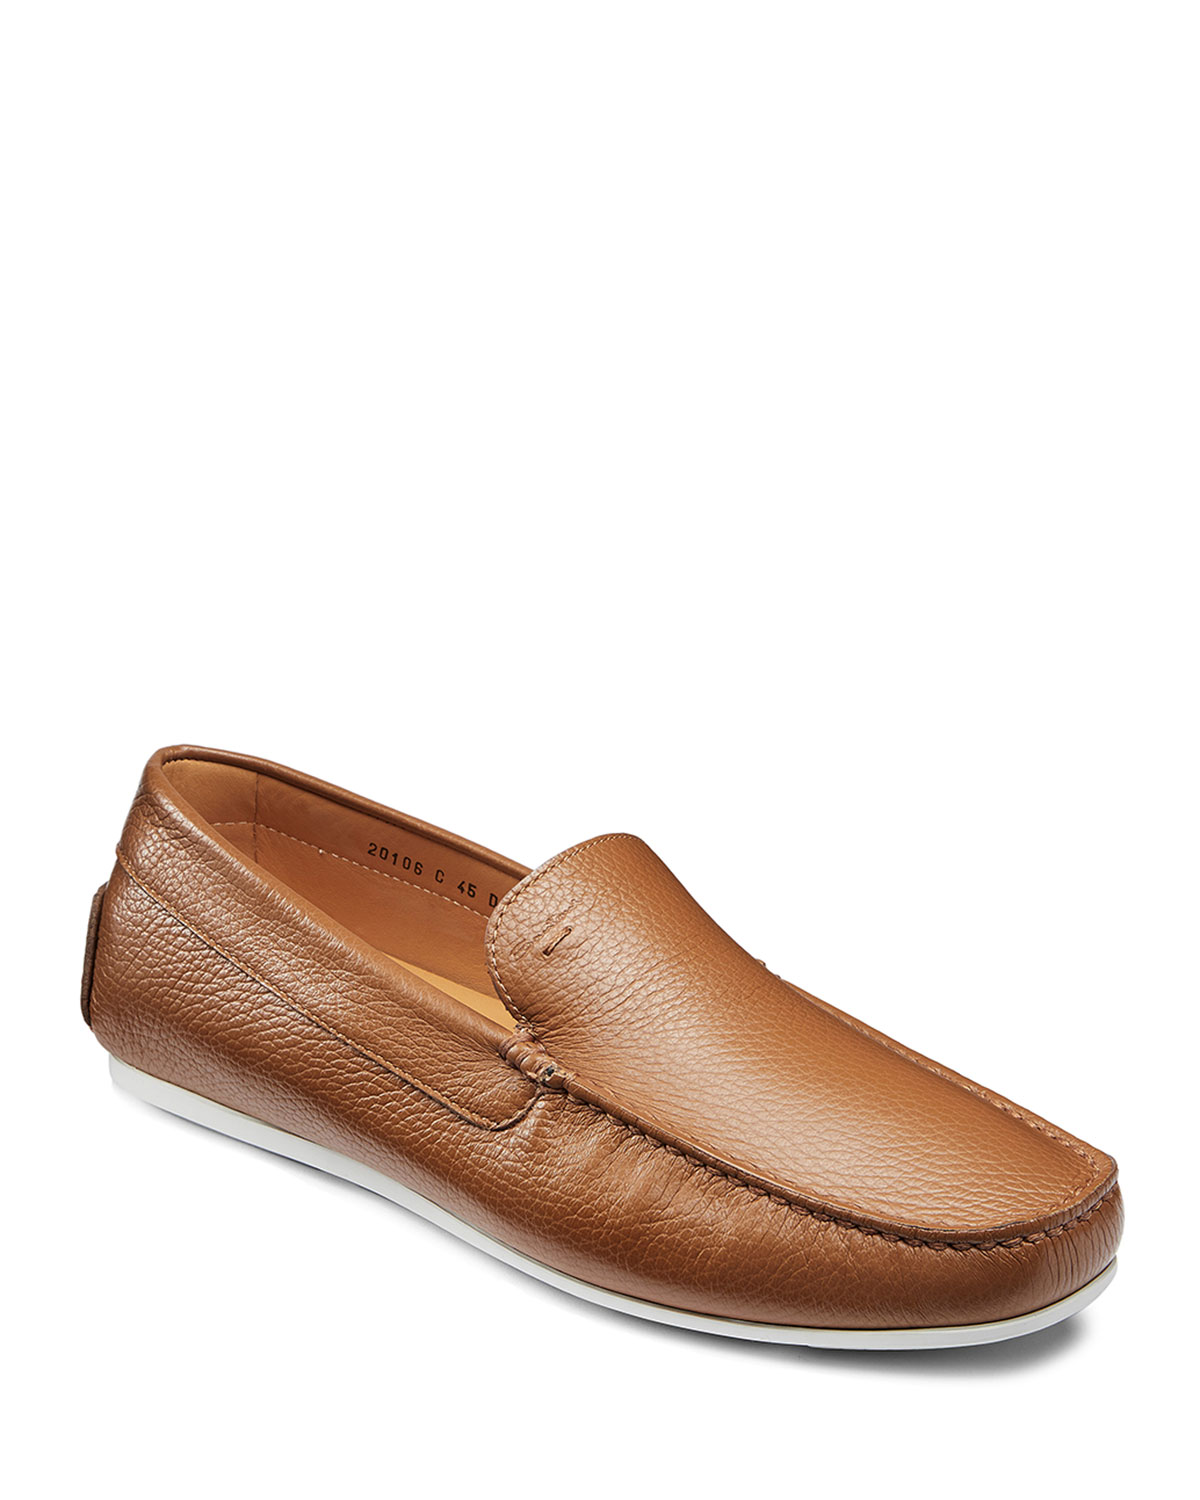 Santoni Shoes MEN'S WELLINGTON DRIVERS, LIGHT BROWN